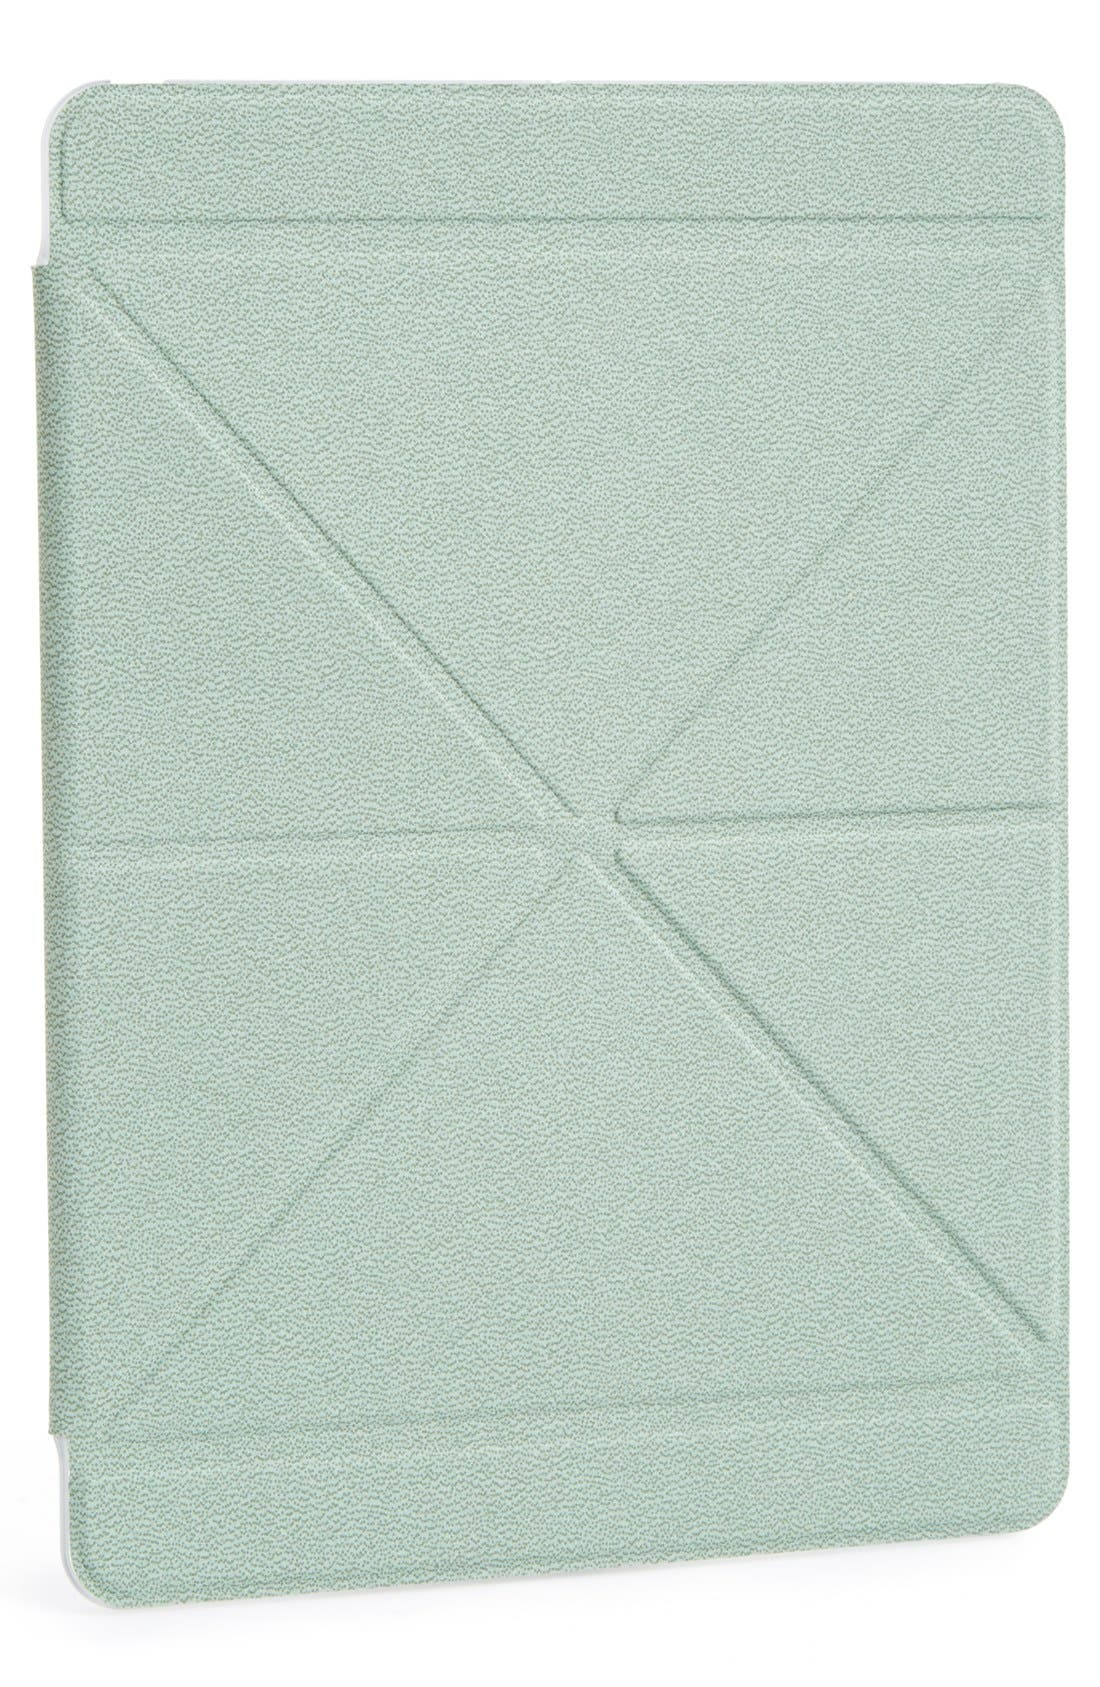 'VersaCover' iPad Air Cover, Main, color, 300